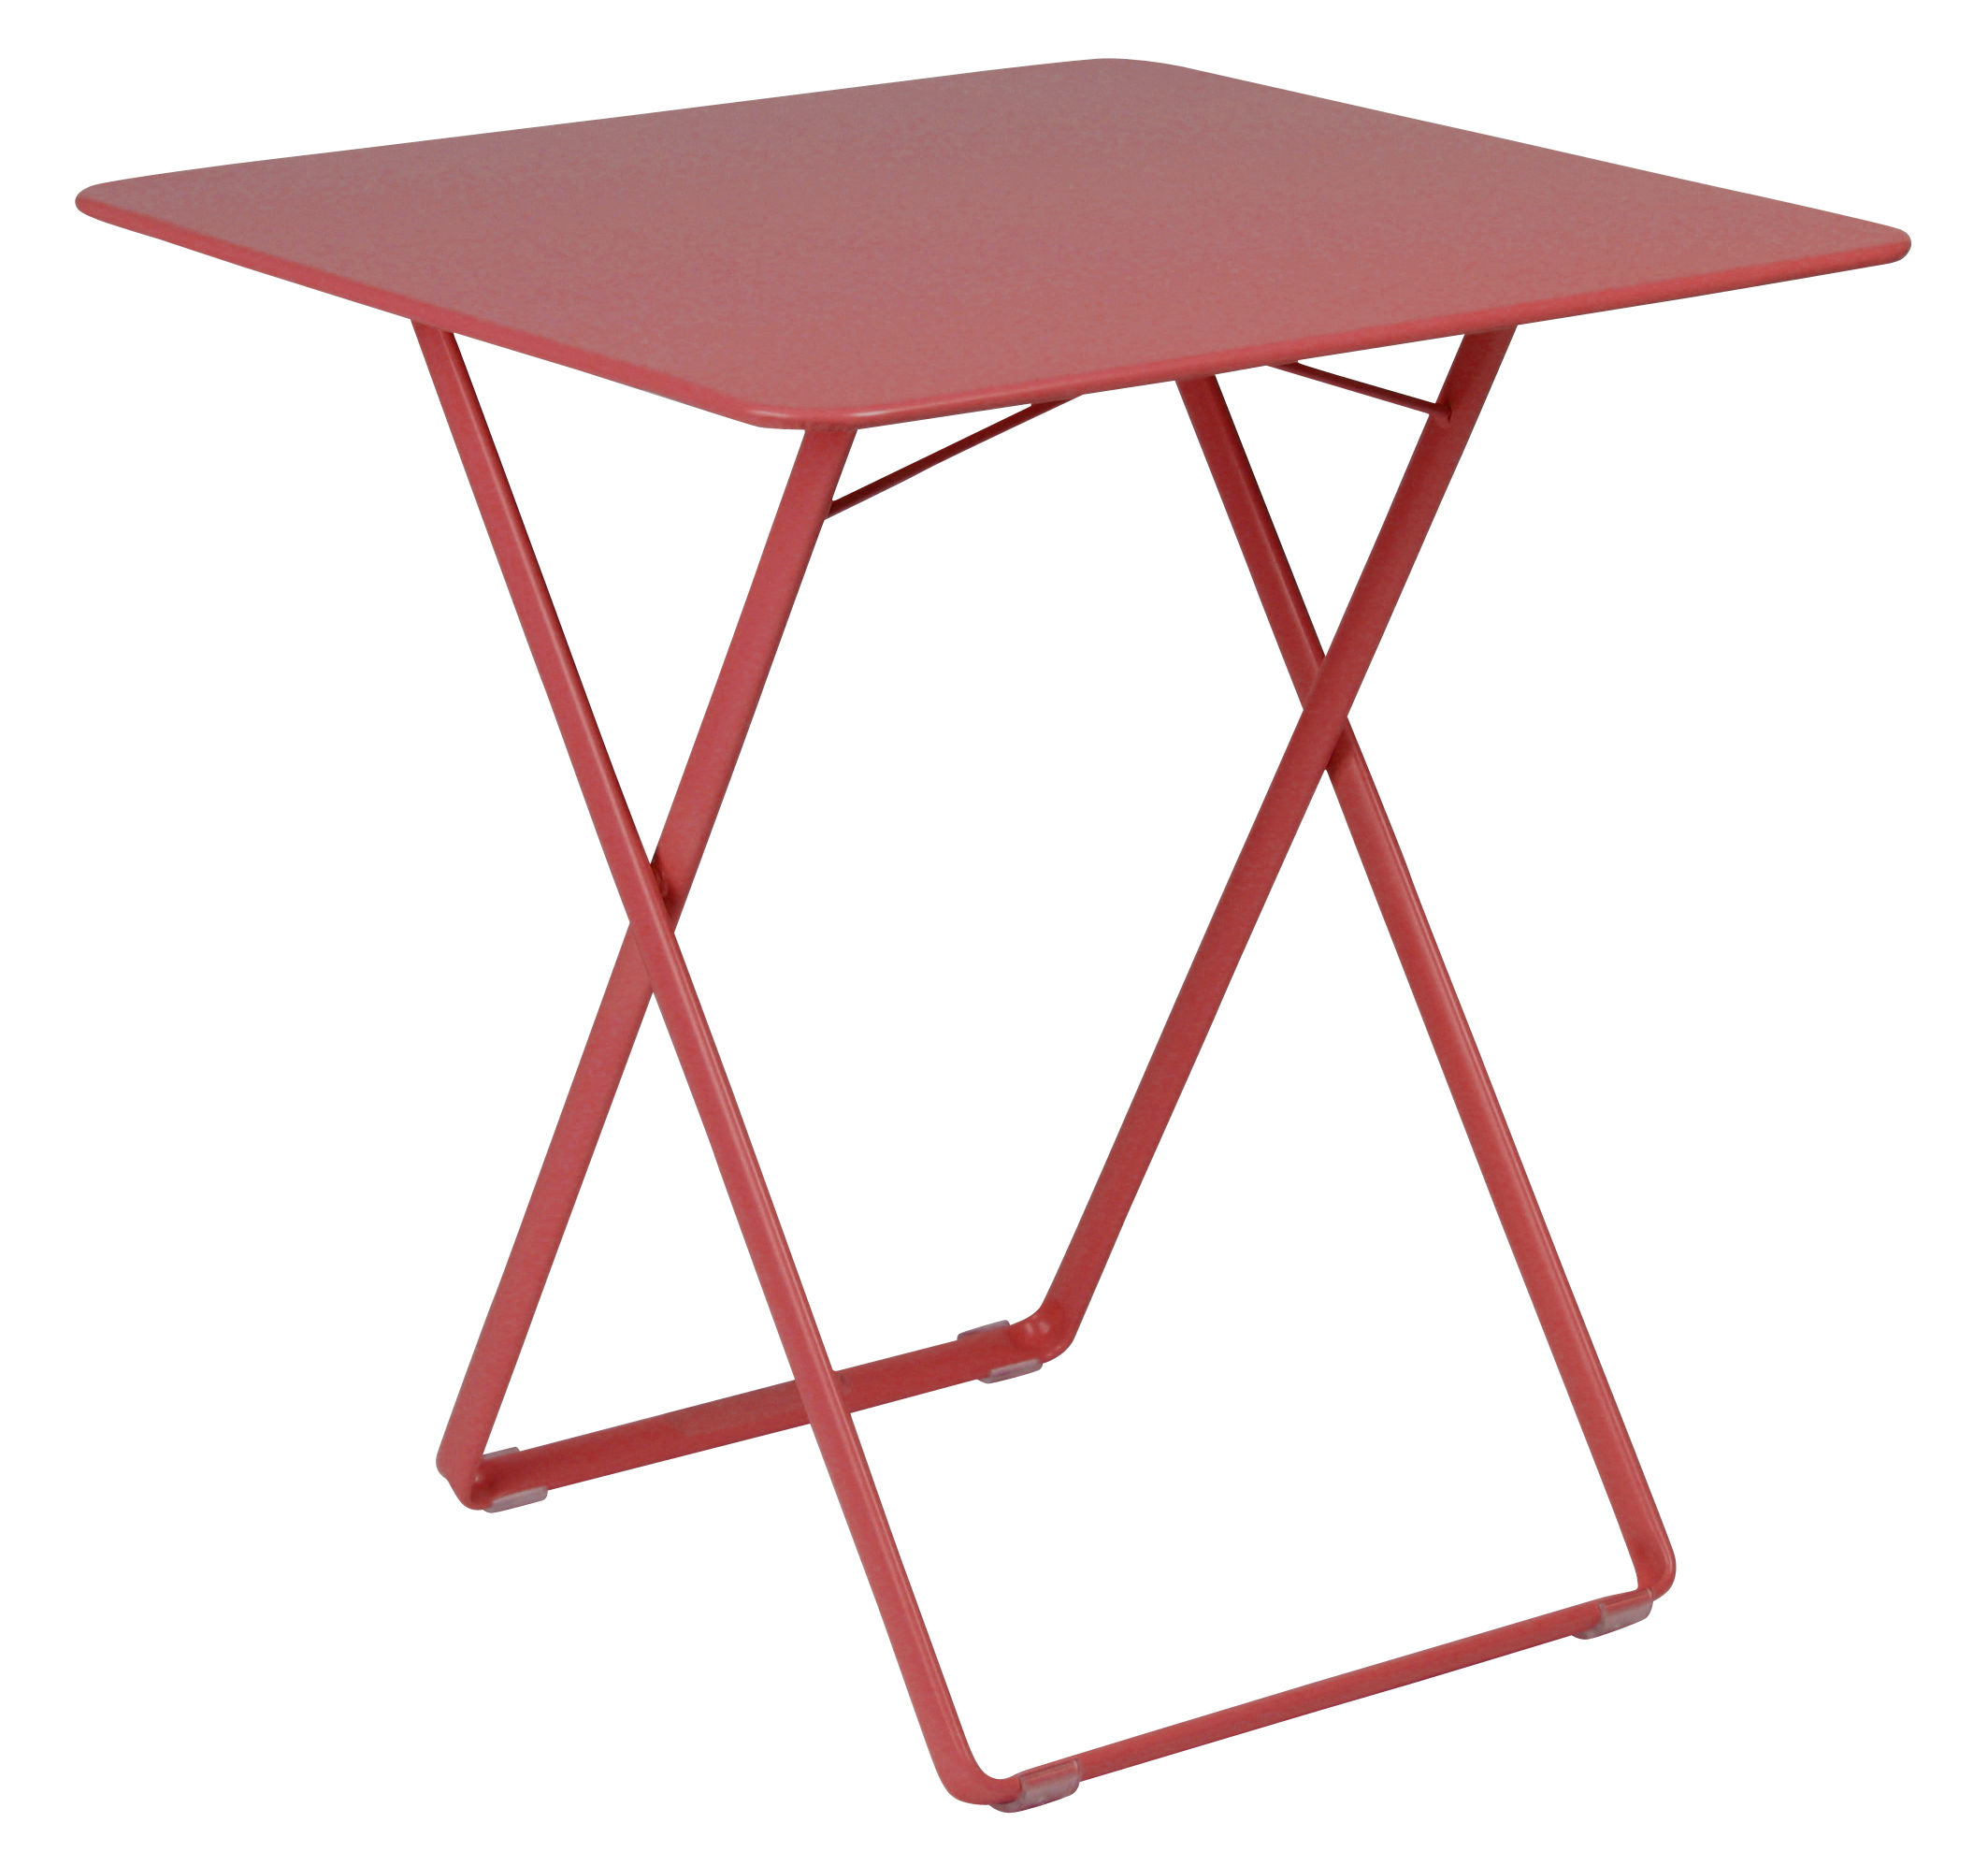 Outdoor - Tables de jardin - Table pliante Plein Air / 71 x 71cm - Fermob - Coquelicot - Acier